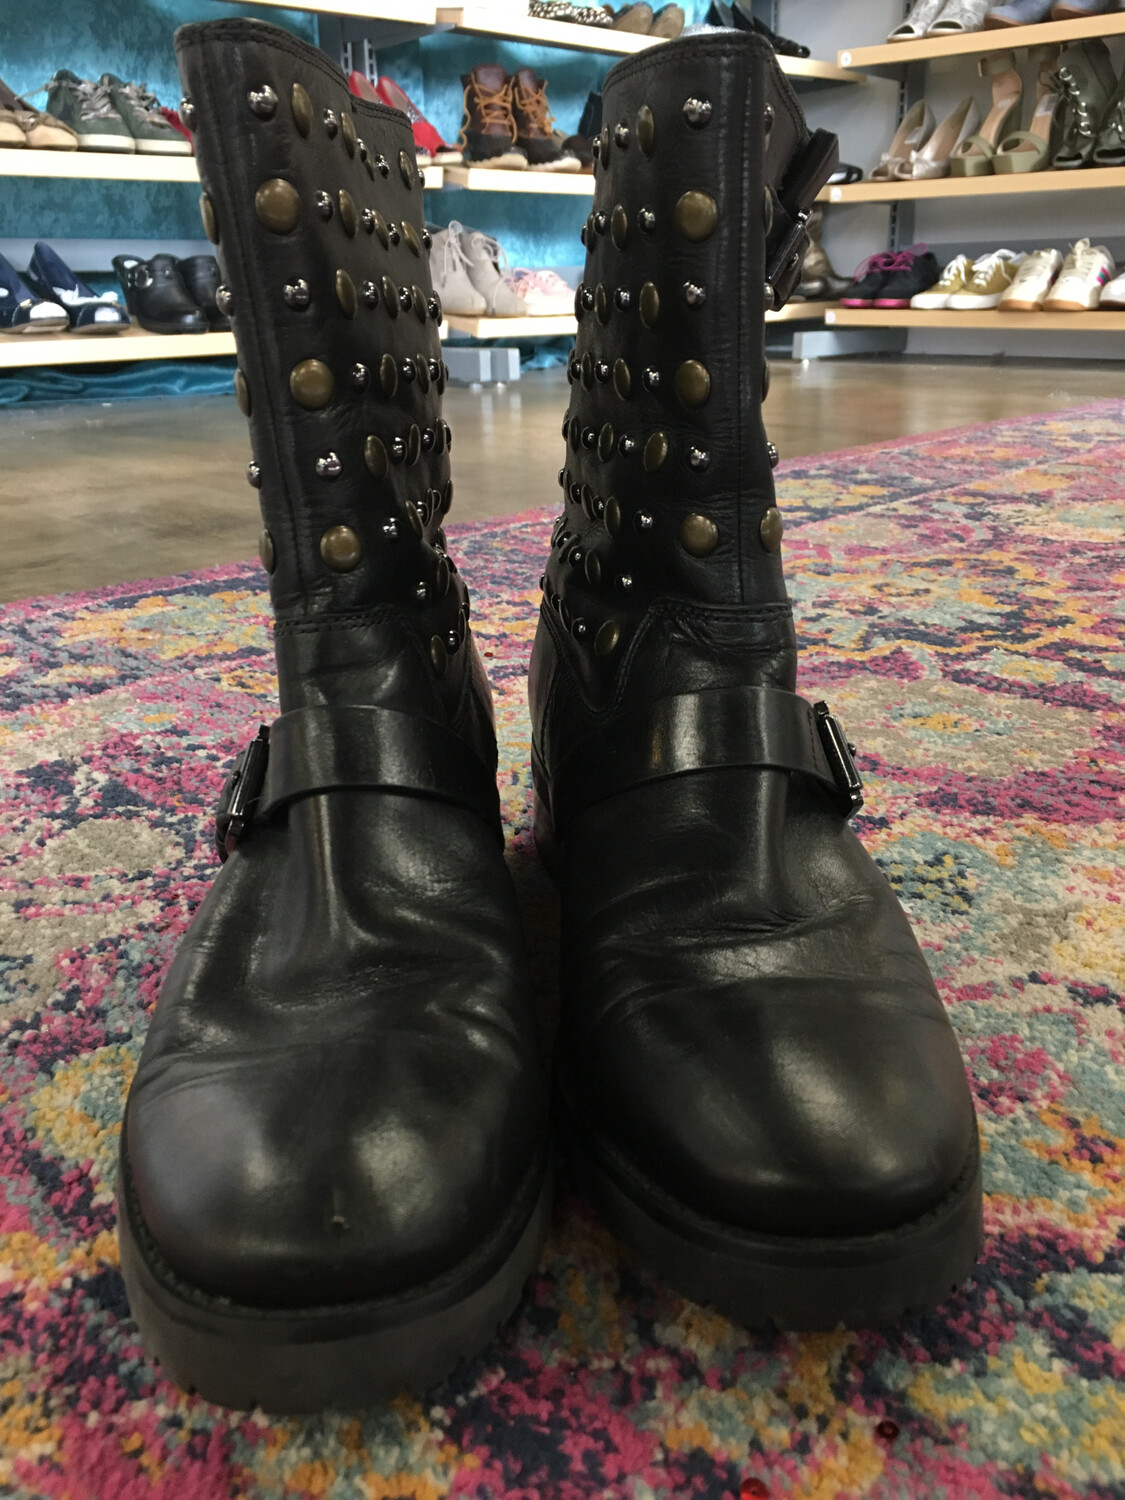 Michael Kors Black Leather Studded Boots - Size 10